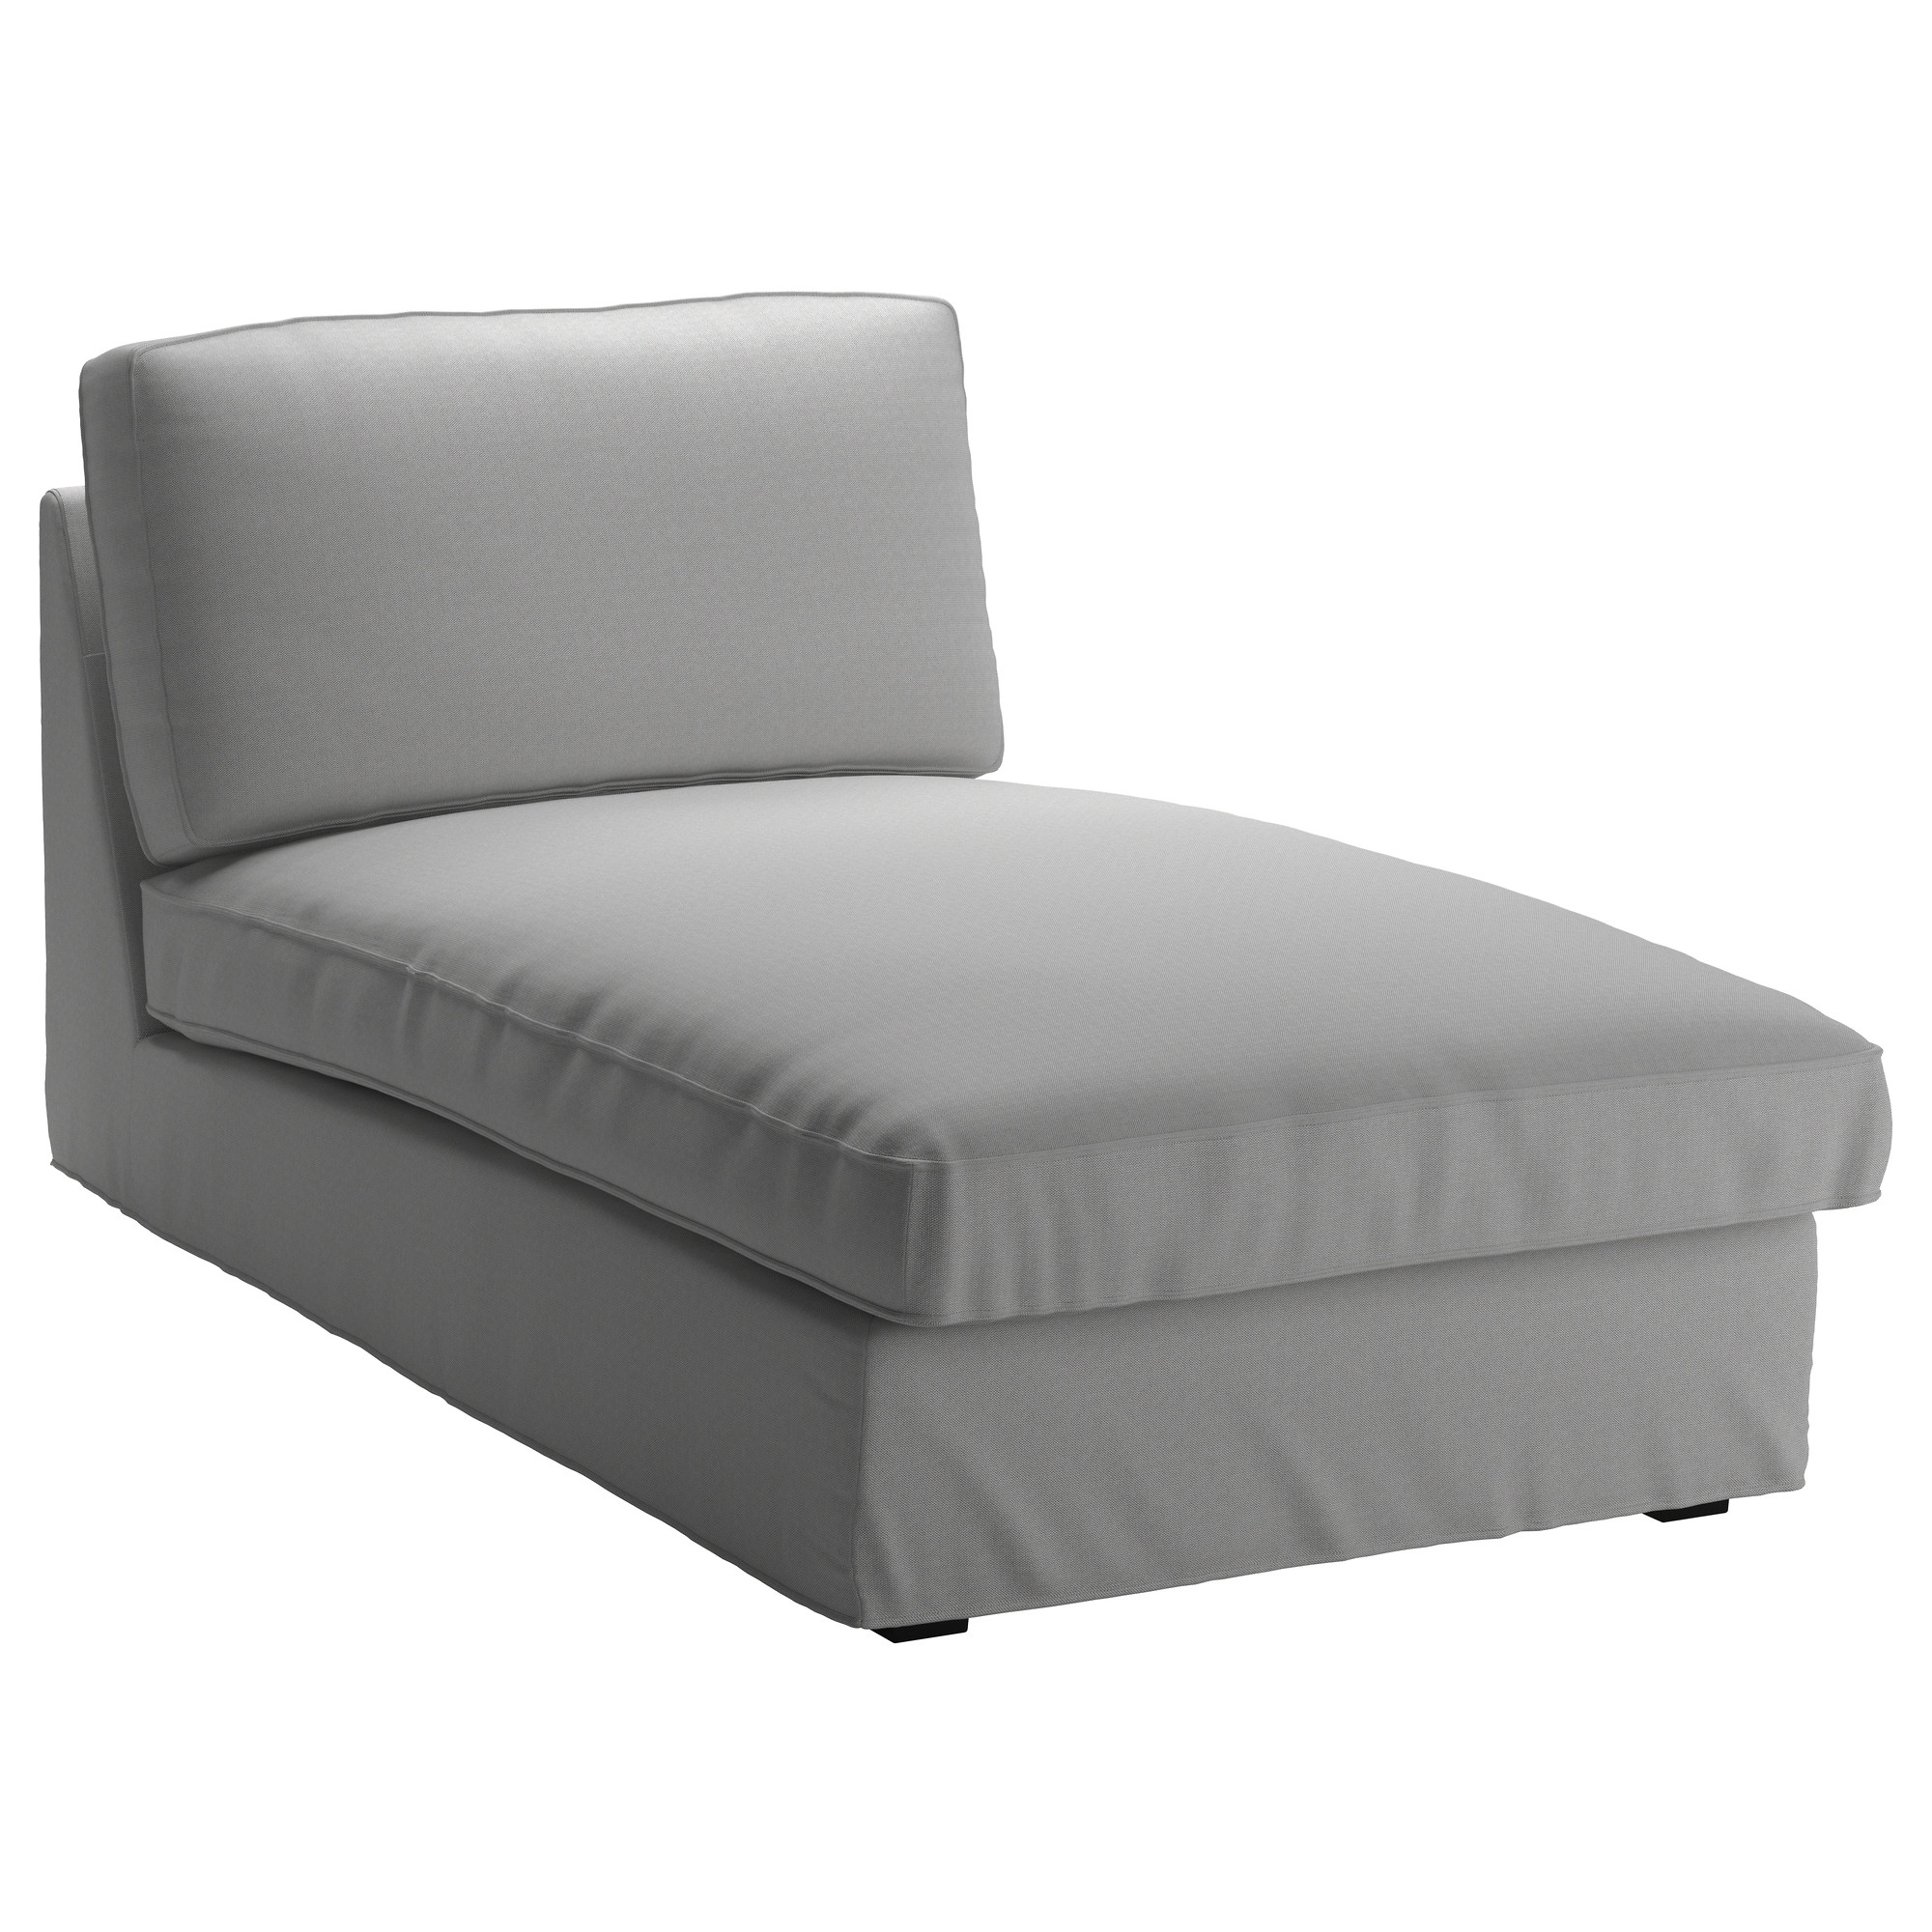 Ikea Chaise Longues For Most Current Kivik Chaise Longue – Orrsta Light Grey – Ikea (Gallery 10 of 15)